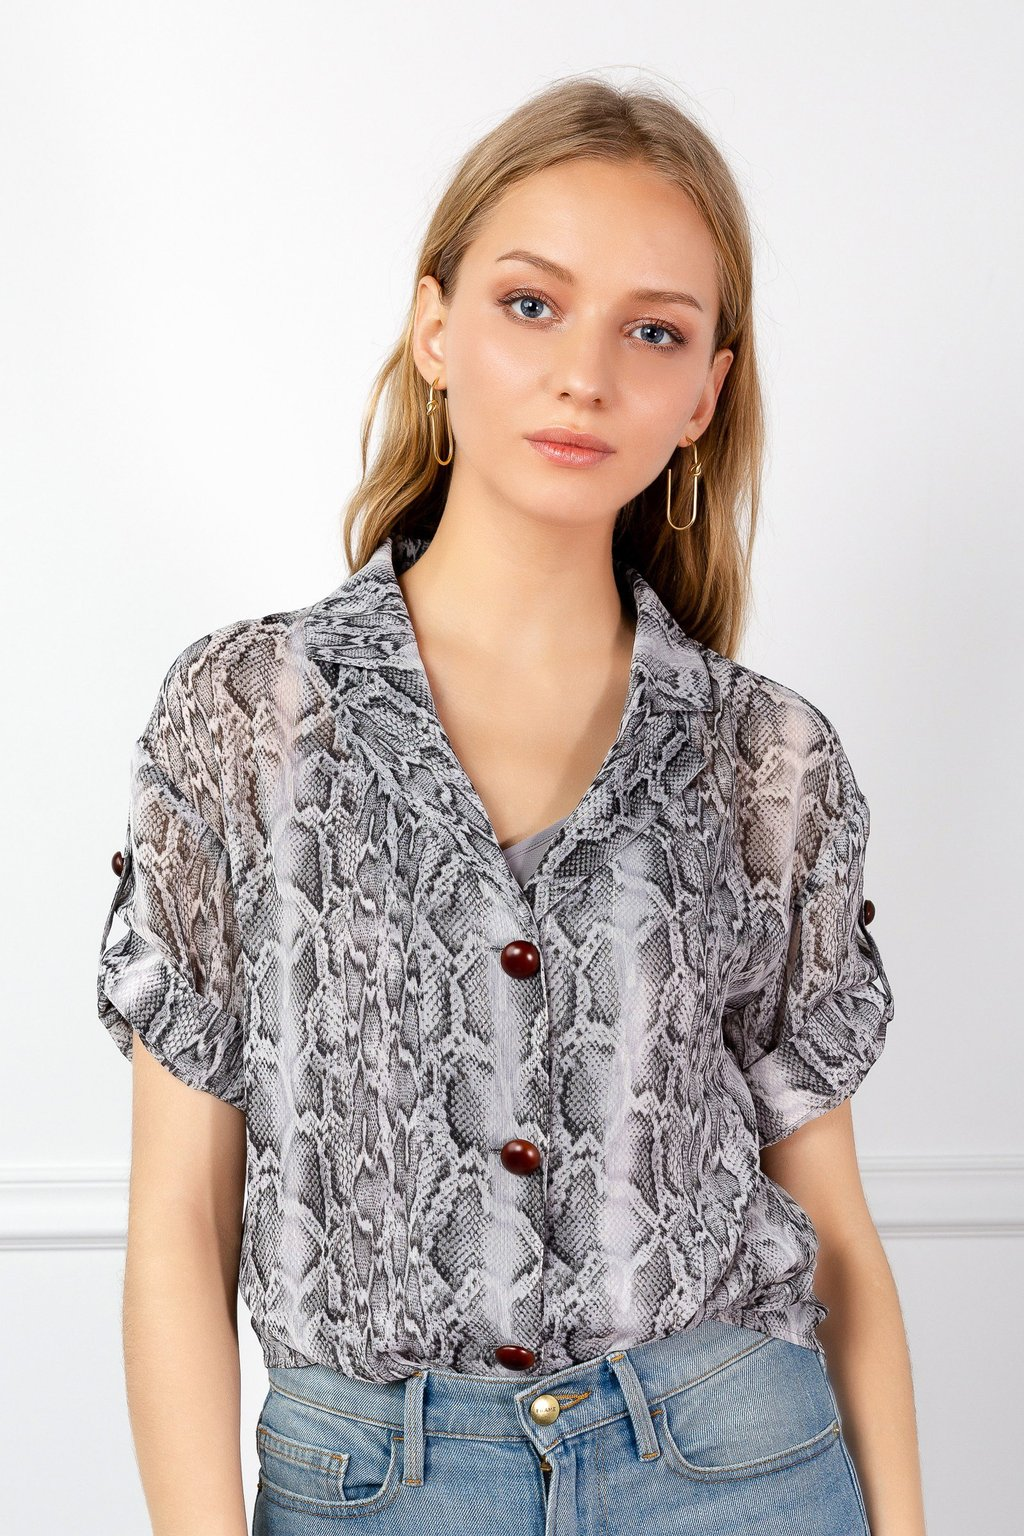 Snakeskin Shirt by J.ING LA Women's fashion